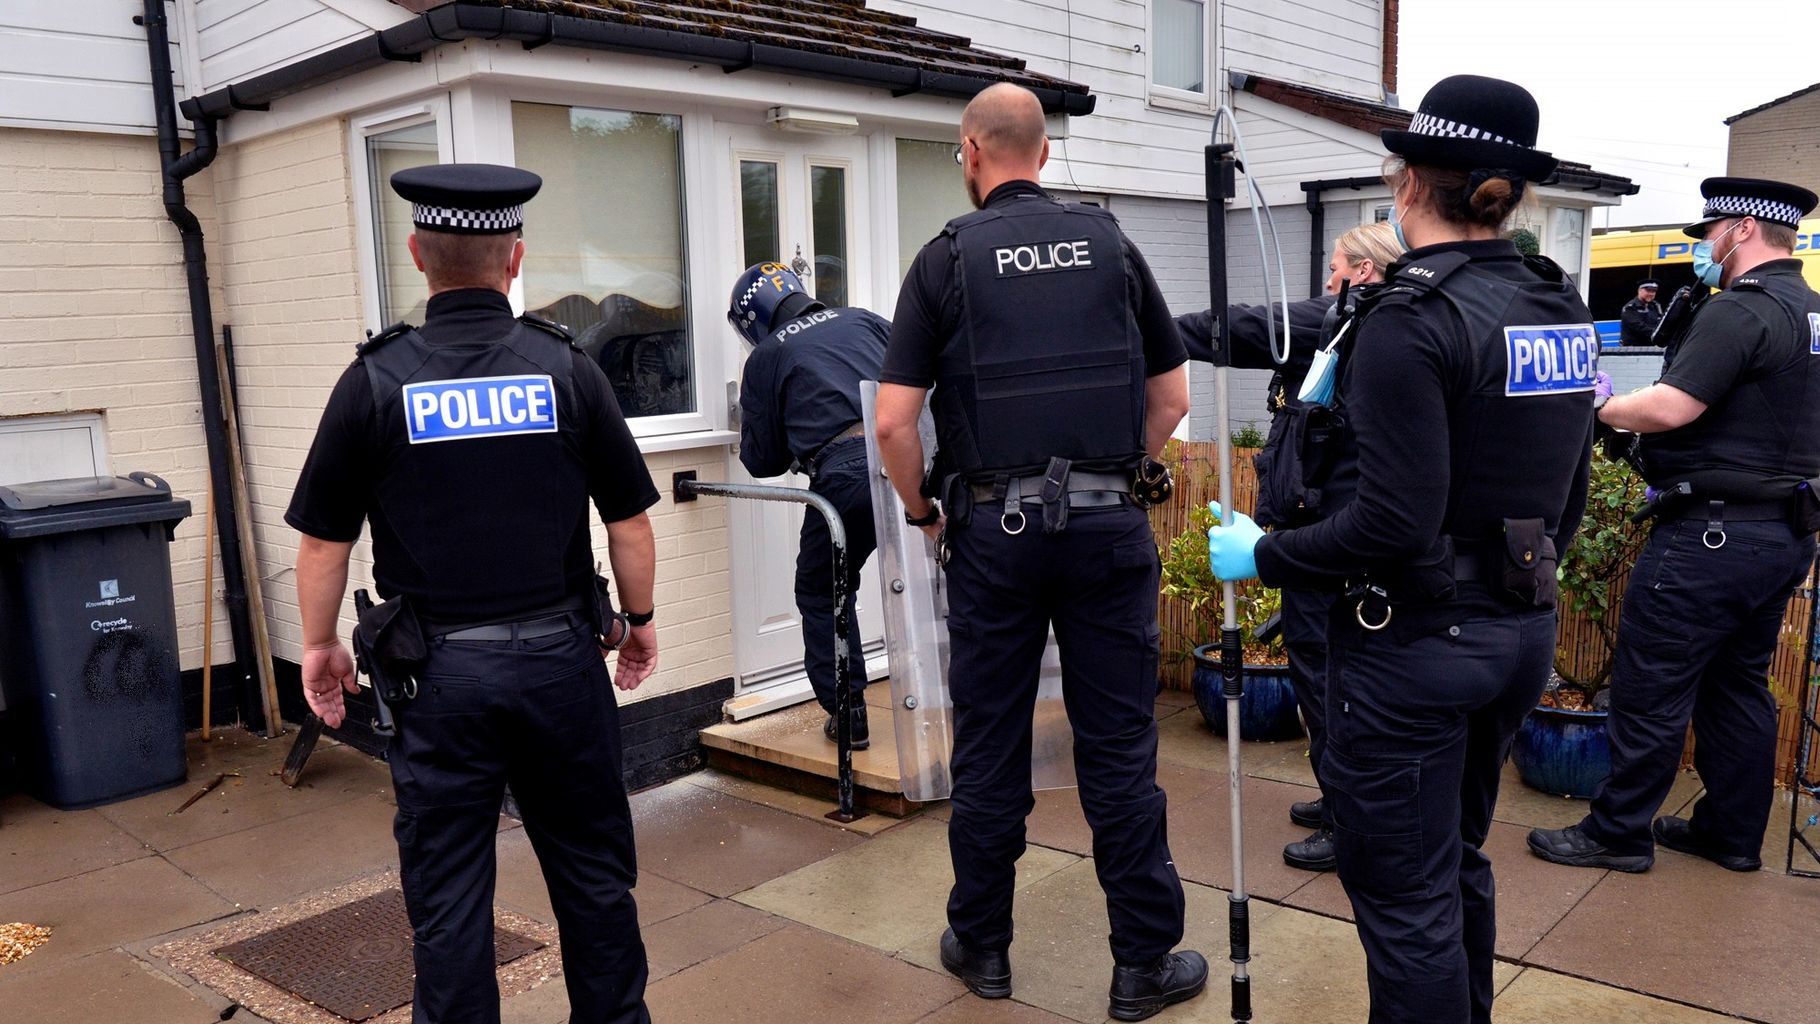 Police seize millions of pounds in raids across Merseyside